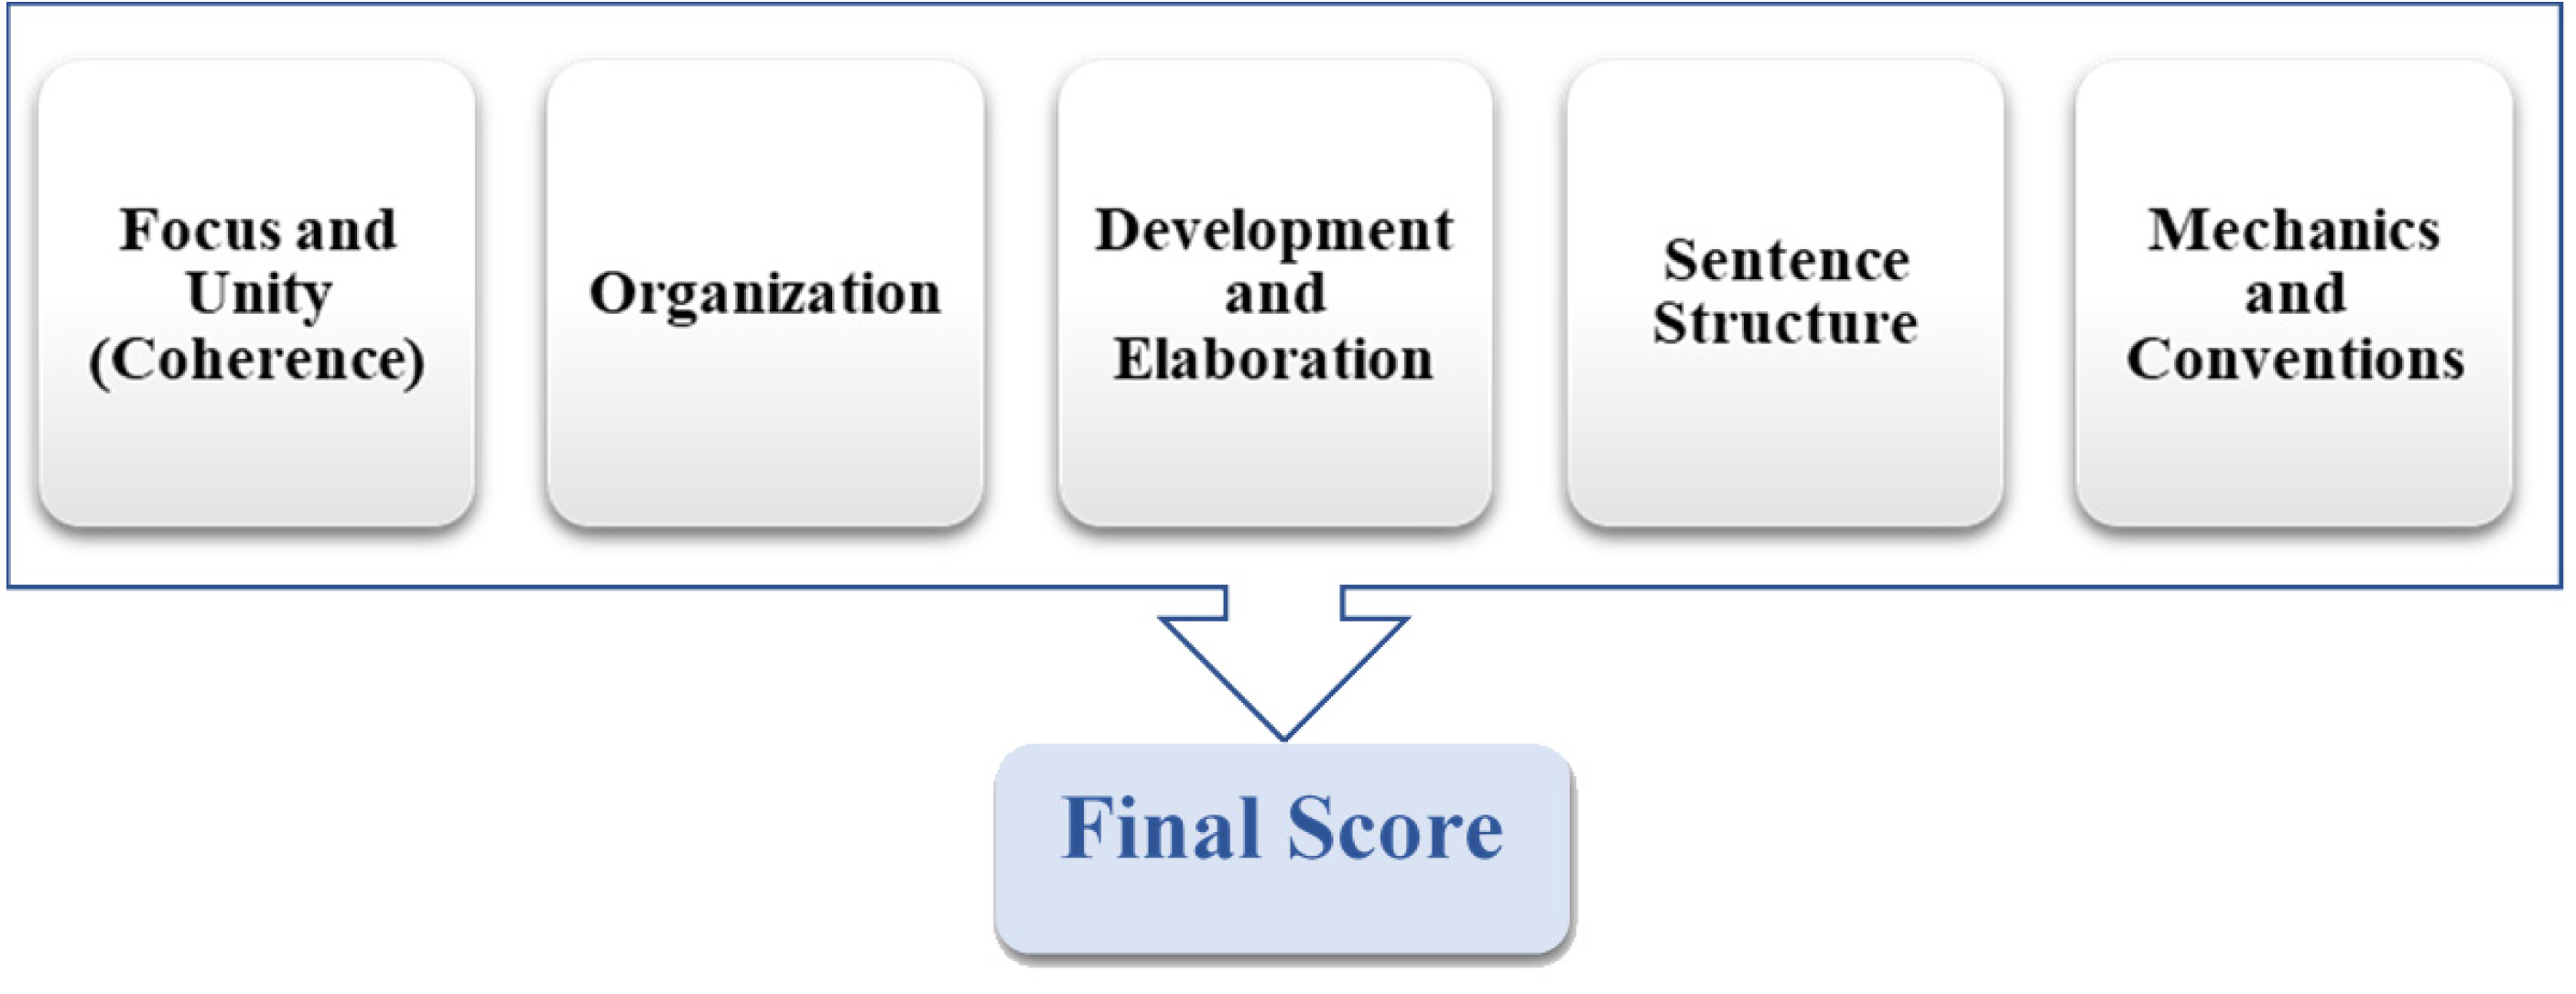 Automated language essay scoring systems: a literature review [PeerJ]